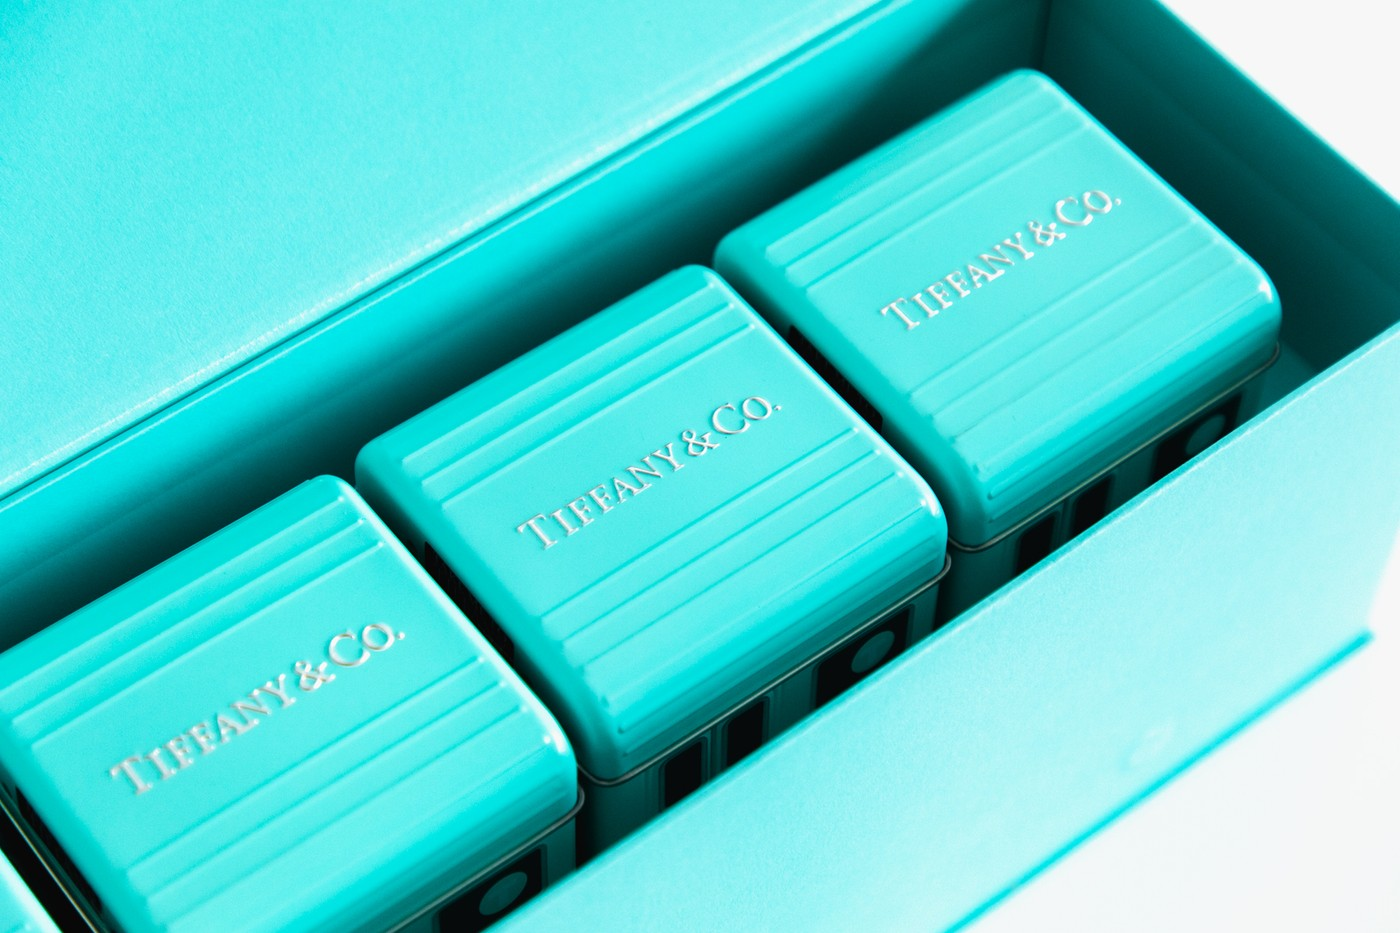 Mooncakes by Tiffany & Co.